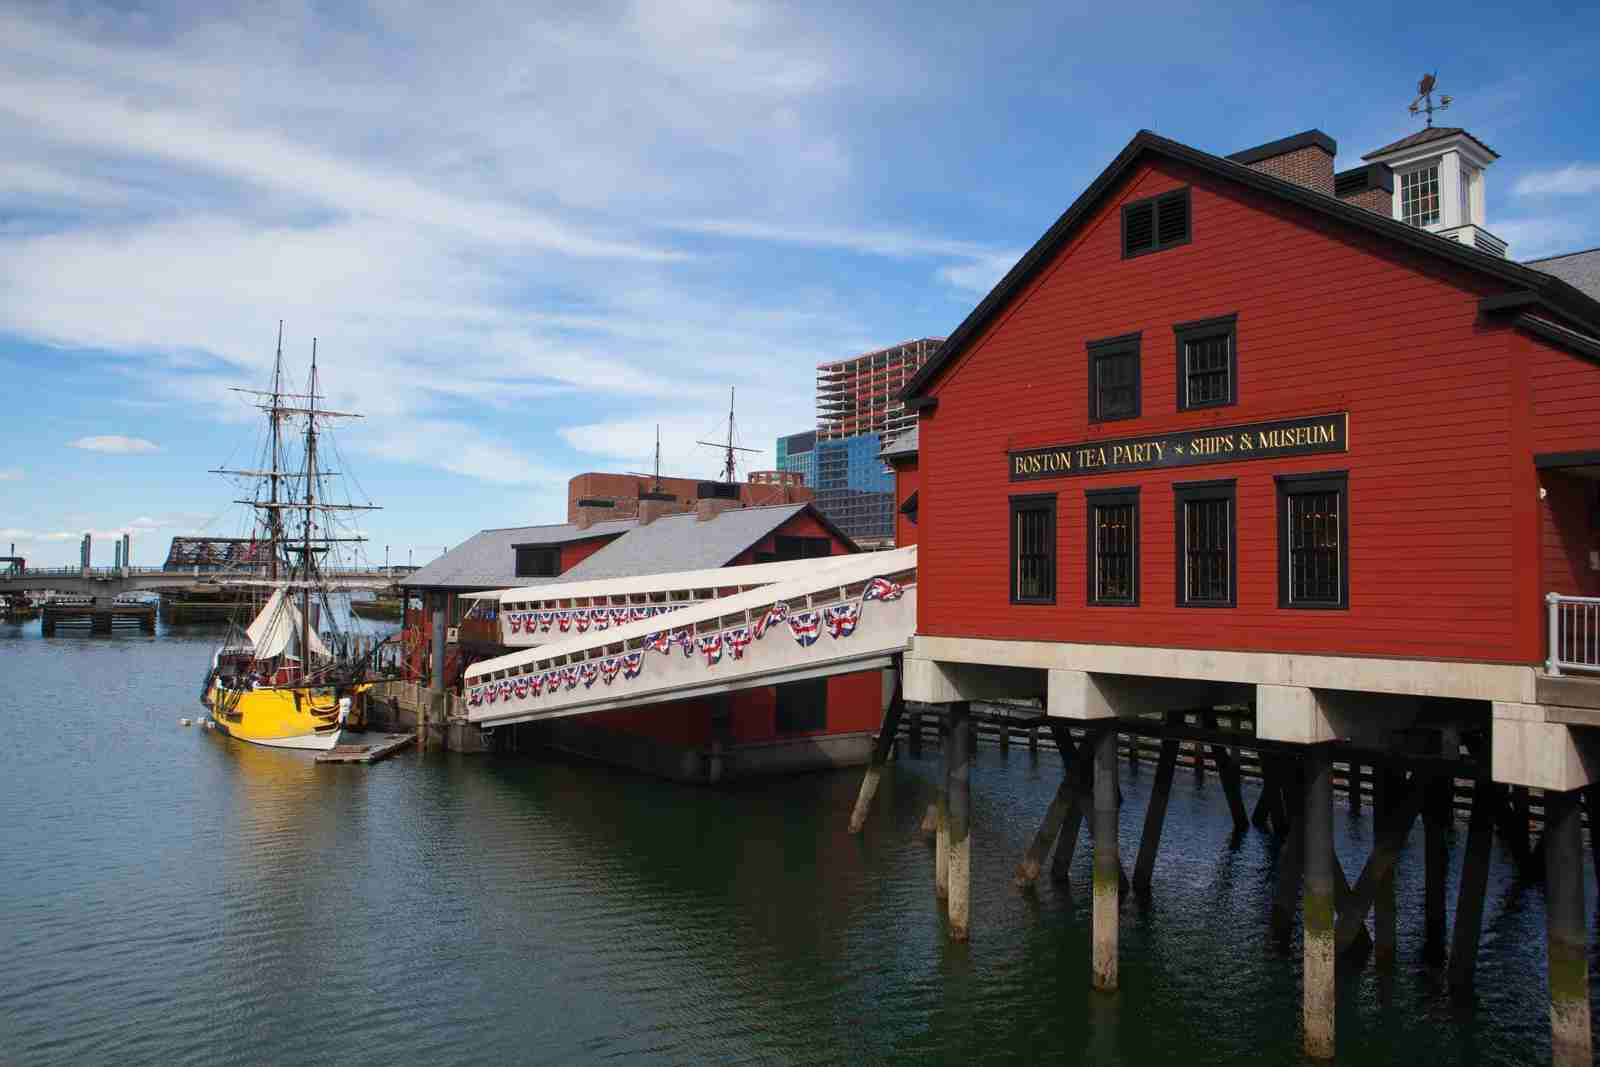 The Boston Tea Party Museum. (Photo by CaptureLight / Getty Images)